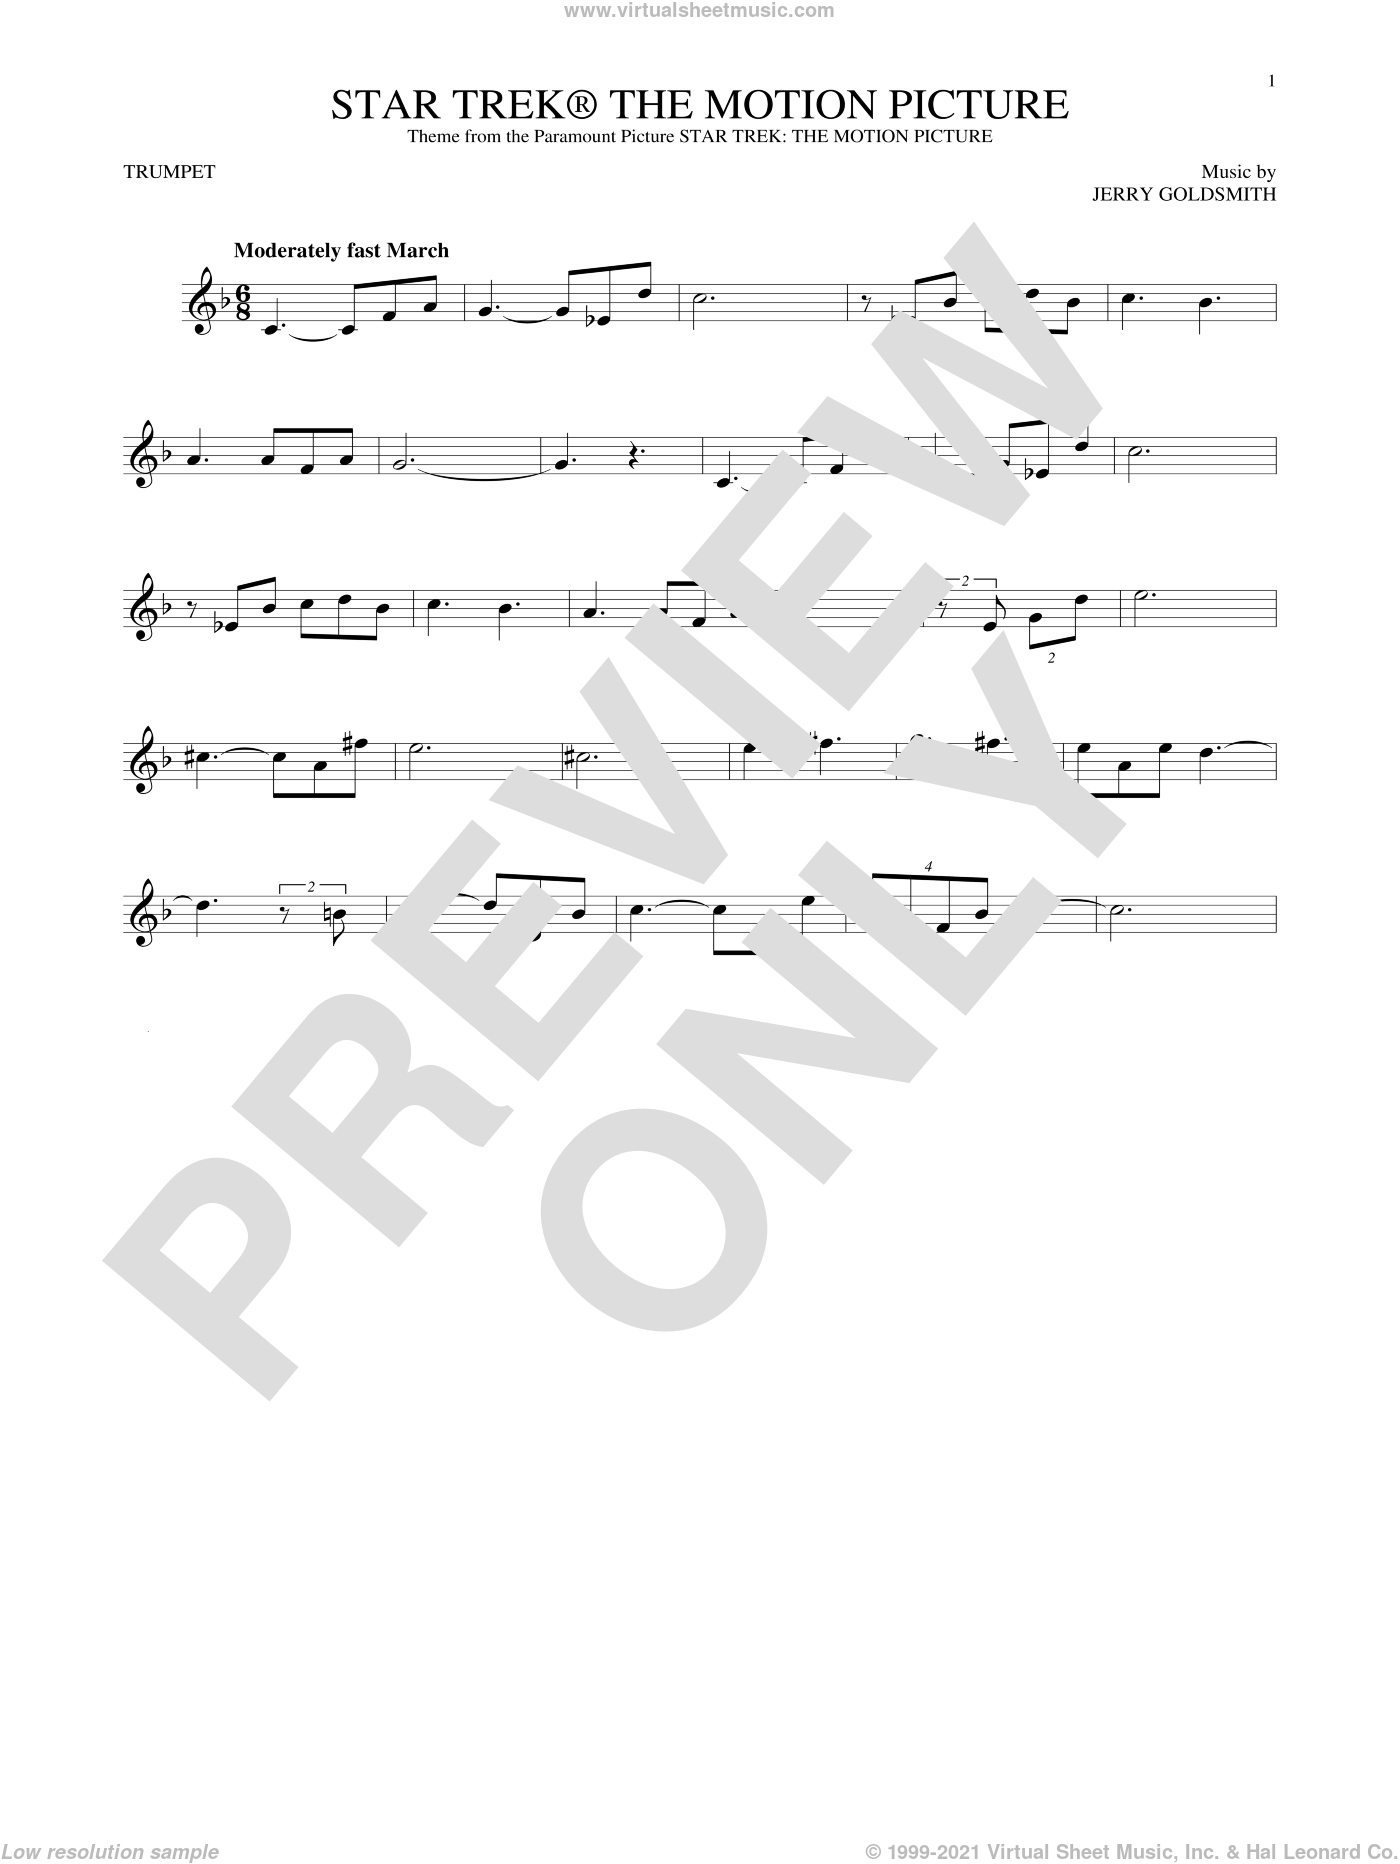 Star Trek The Motion Picture sheet music for trumpet solo by Jerry Goldsmith, classical score, intermediate skill level